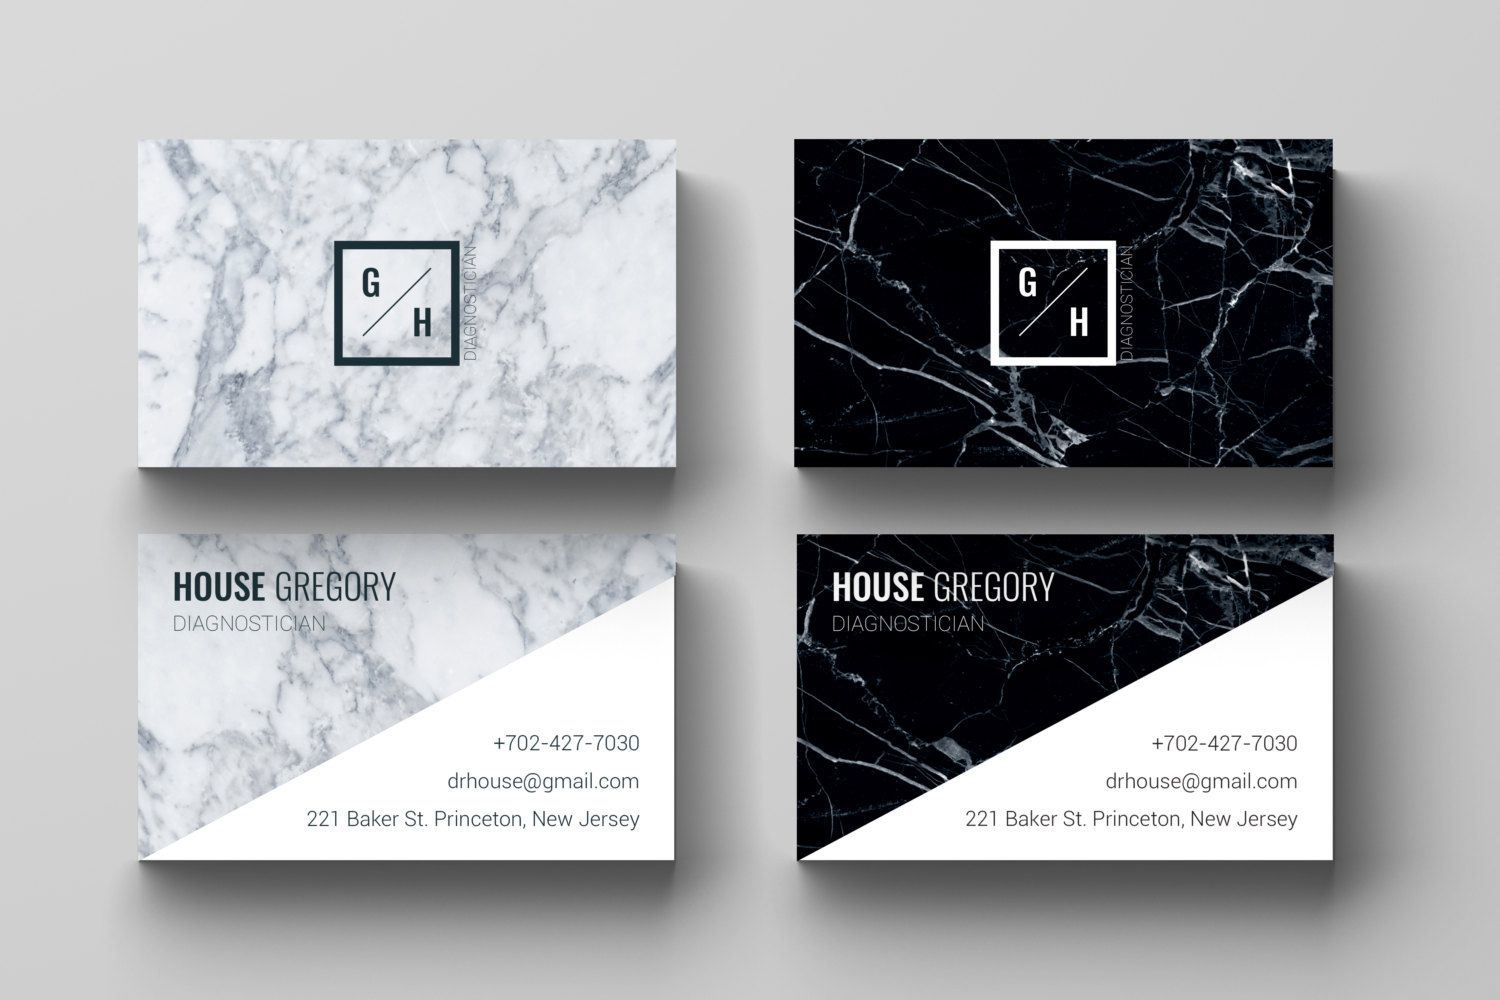 Business Modele De Carte L Marbre Design Noir Blanc Etsy Business Card Design Minimalist Graphic Design Business Card Business Card Design Inspiration